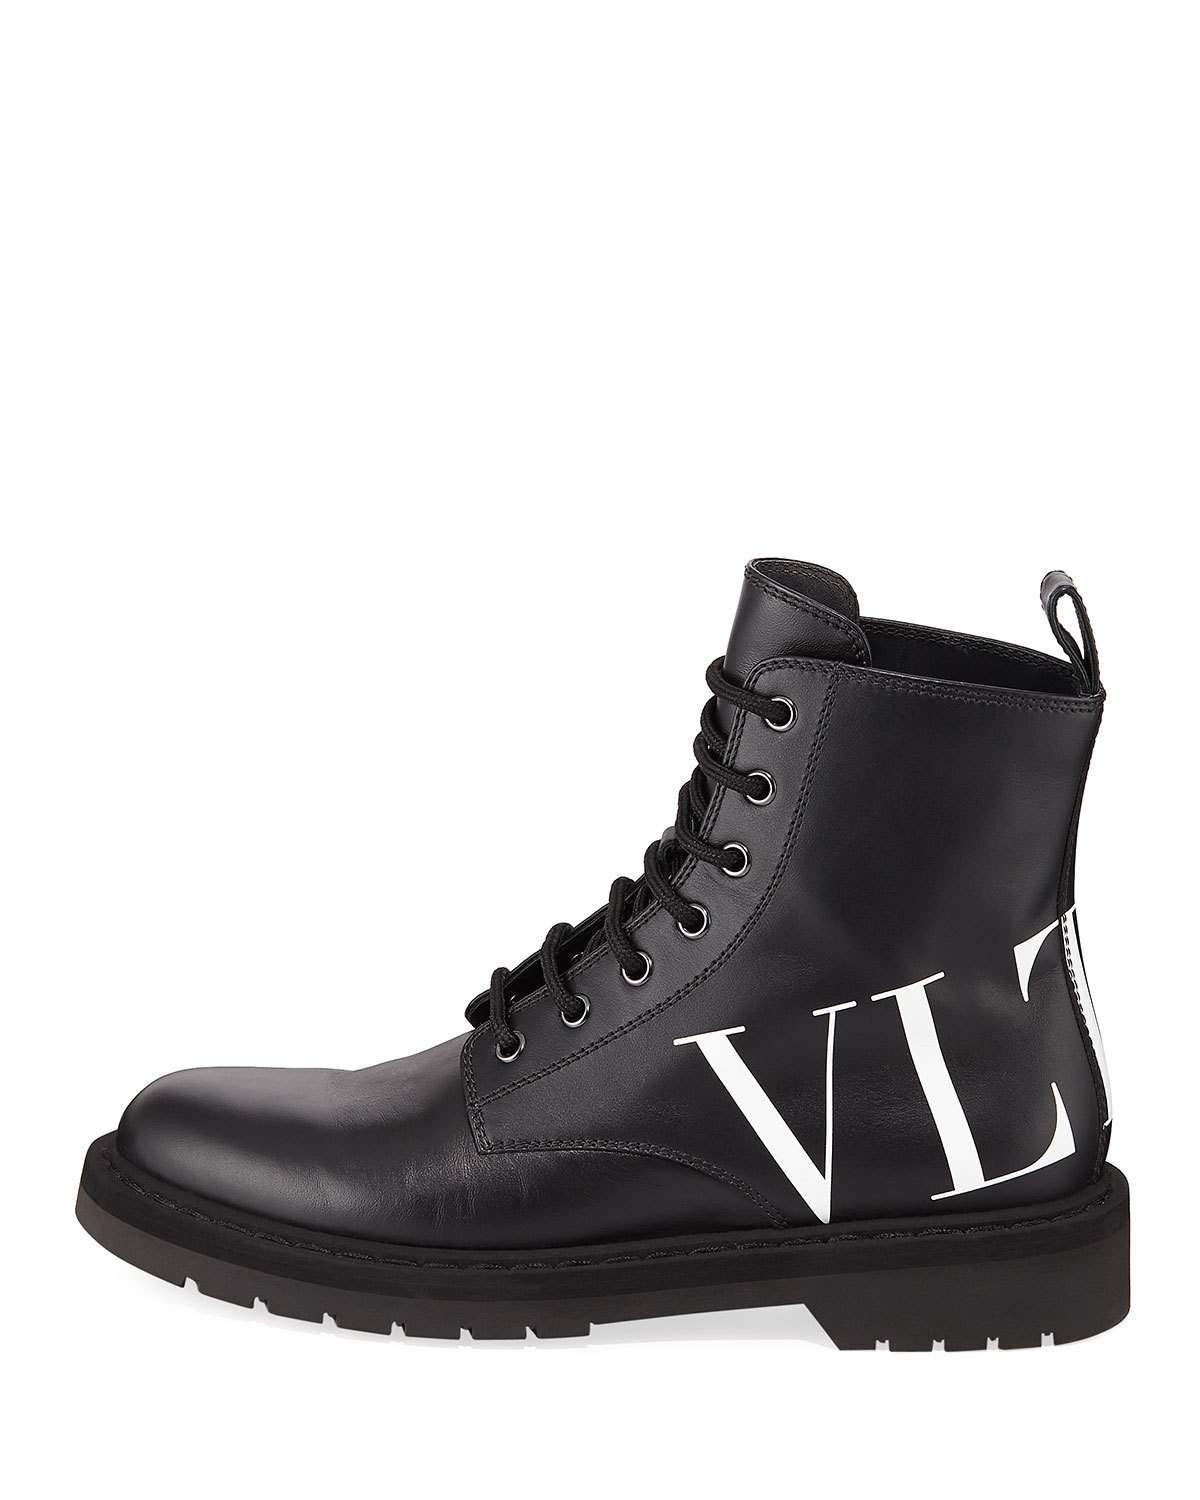 097a4d2bc91 Valentino VLTN Leather Combat Boots in 2019   Products   Valentino ...